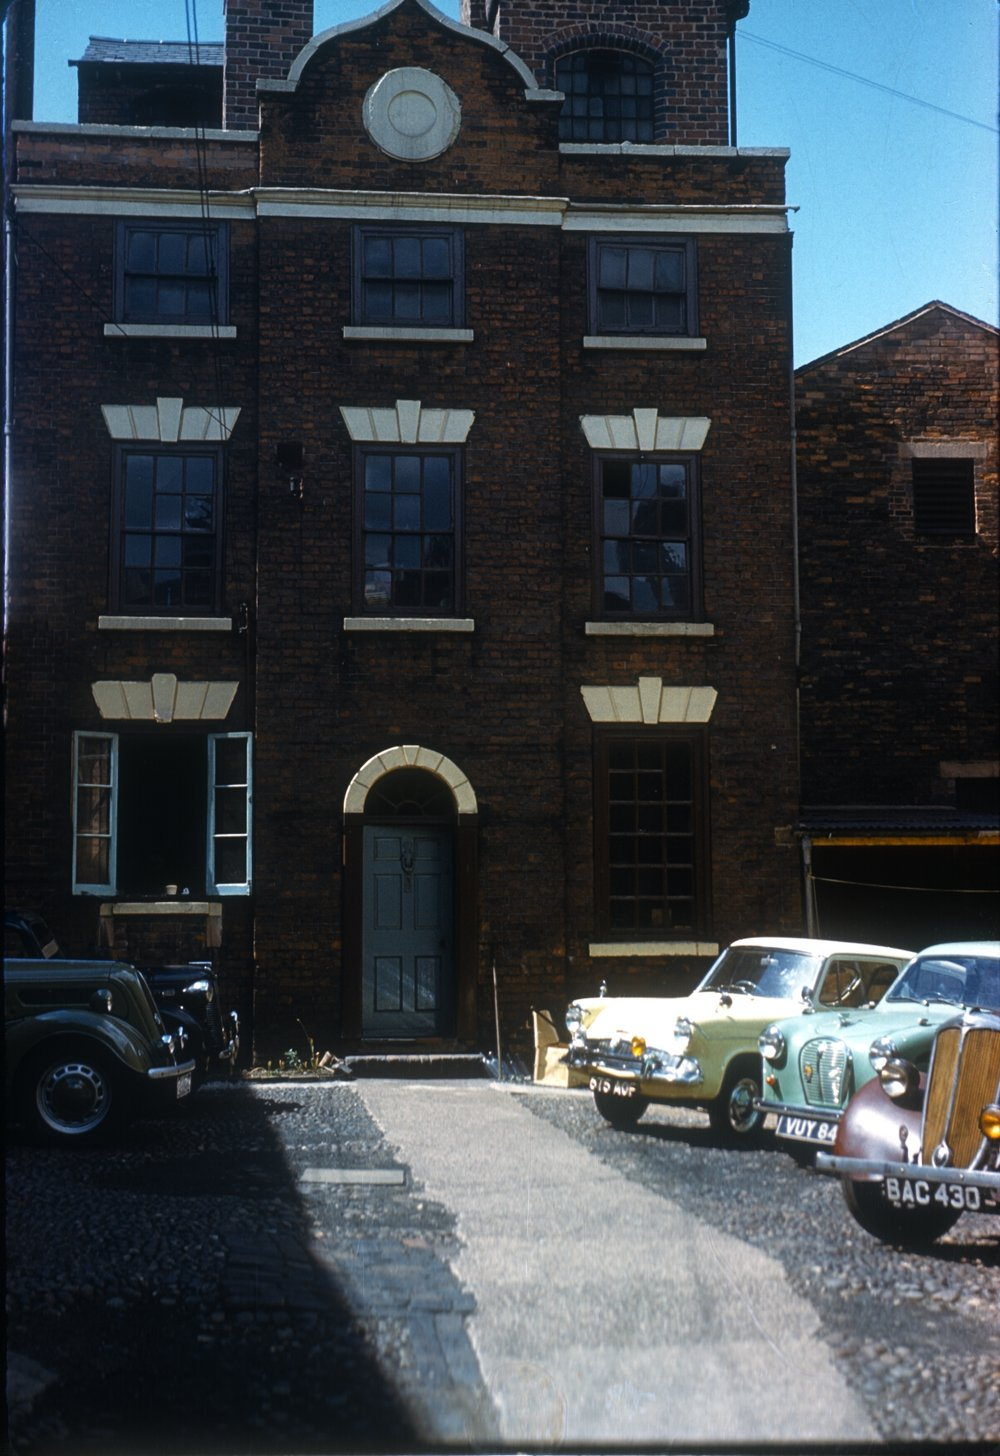 No.7 Whittall Street, Entry to Andertons Square. Parker-Hale Arms & Accessories (Workshops built c.1773) 13th June 1960